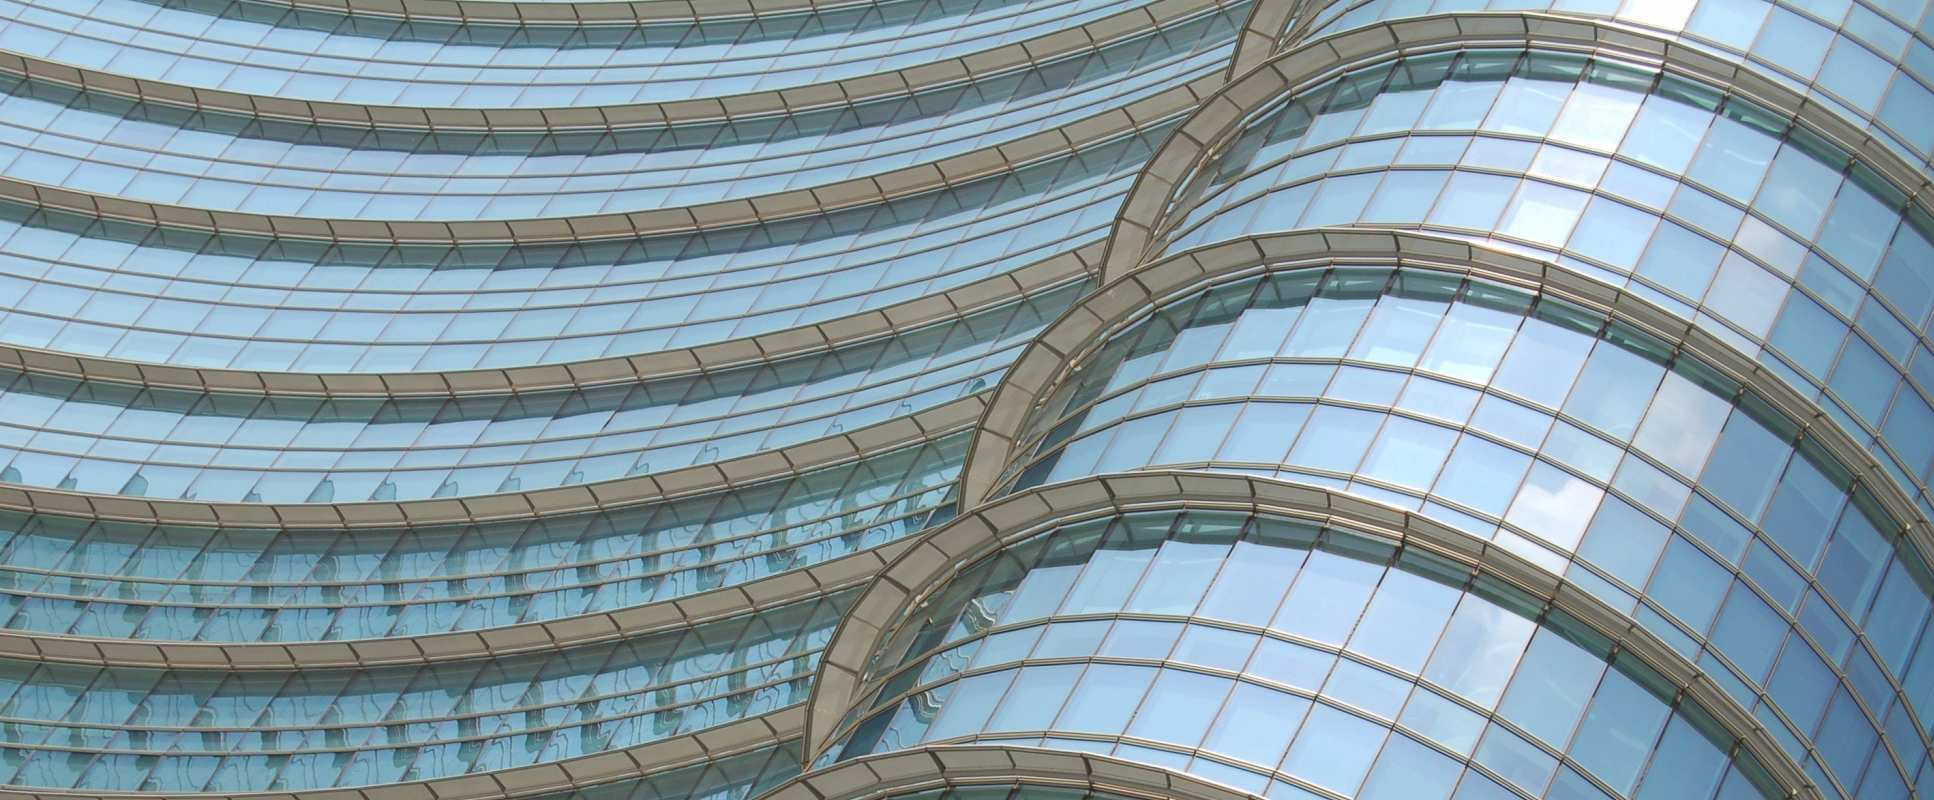 Curved building in milan